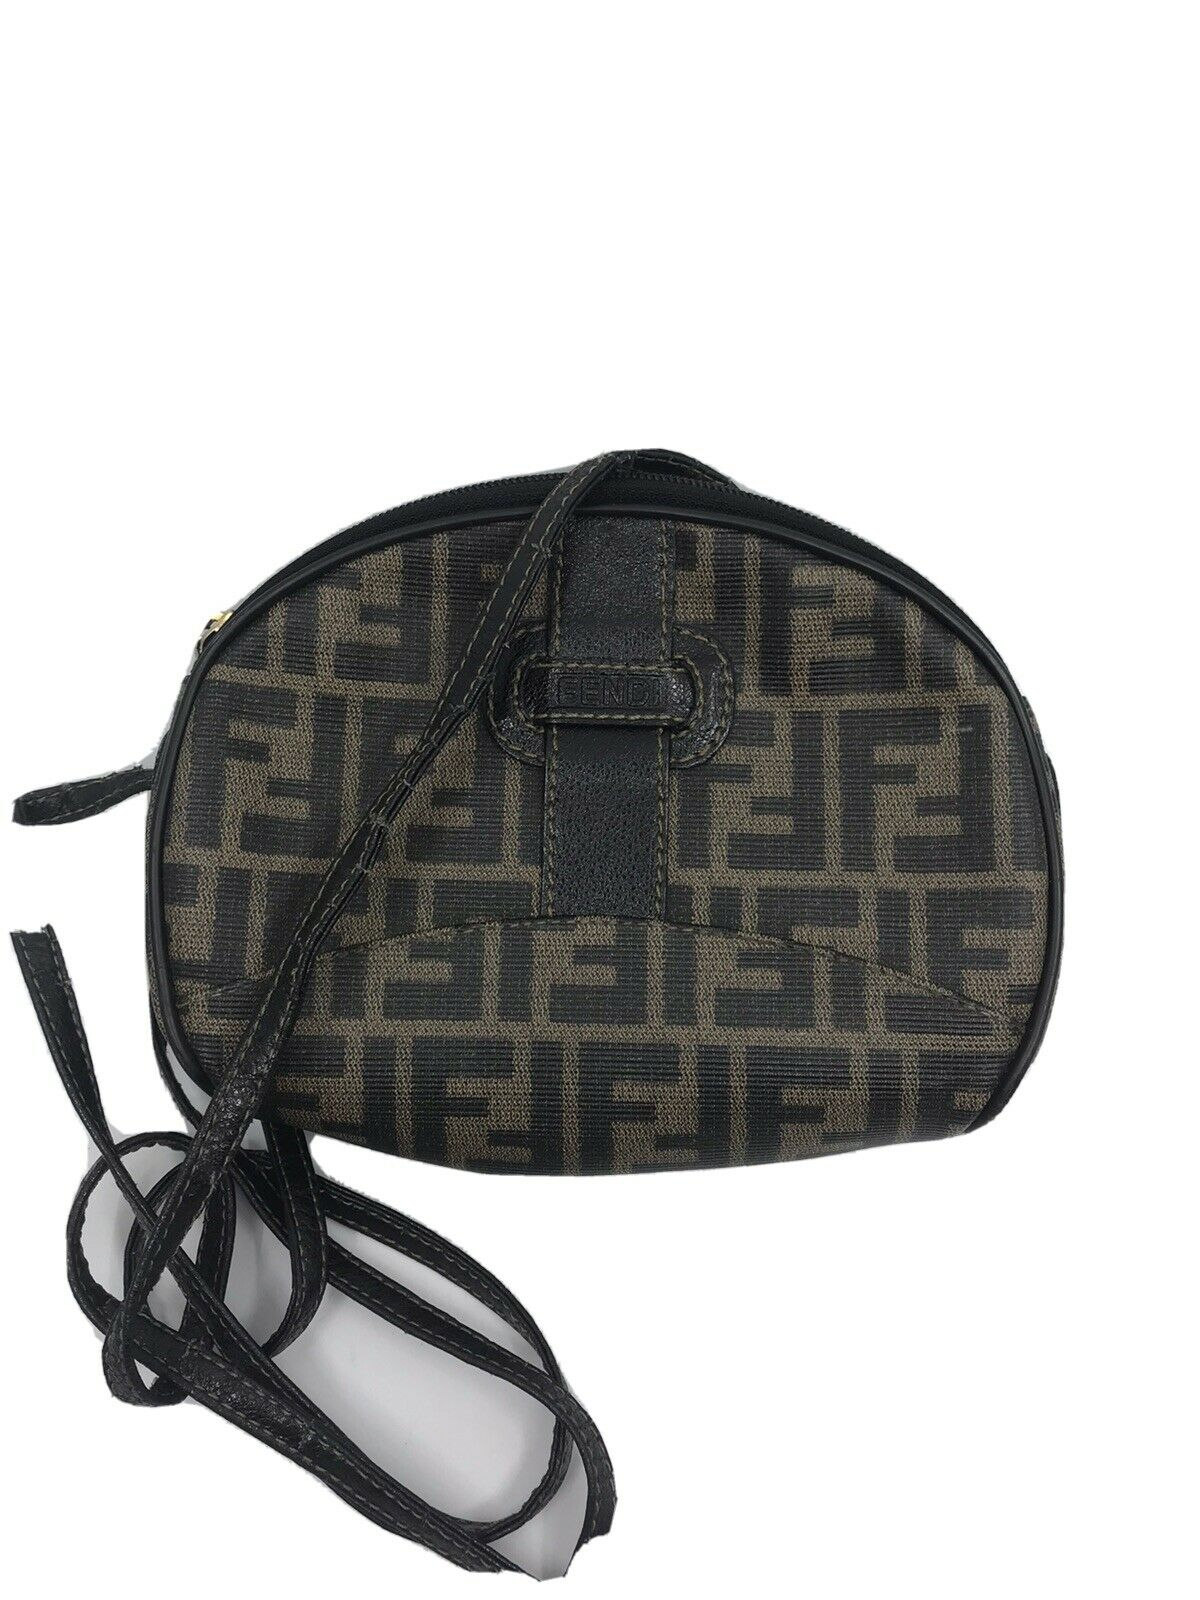 FENDI Vintage All over logo small crossbody